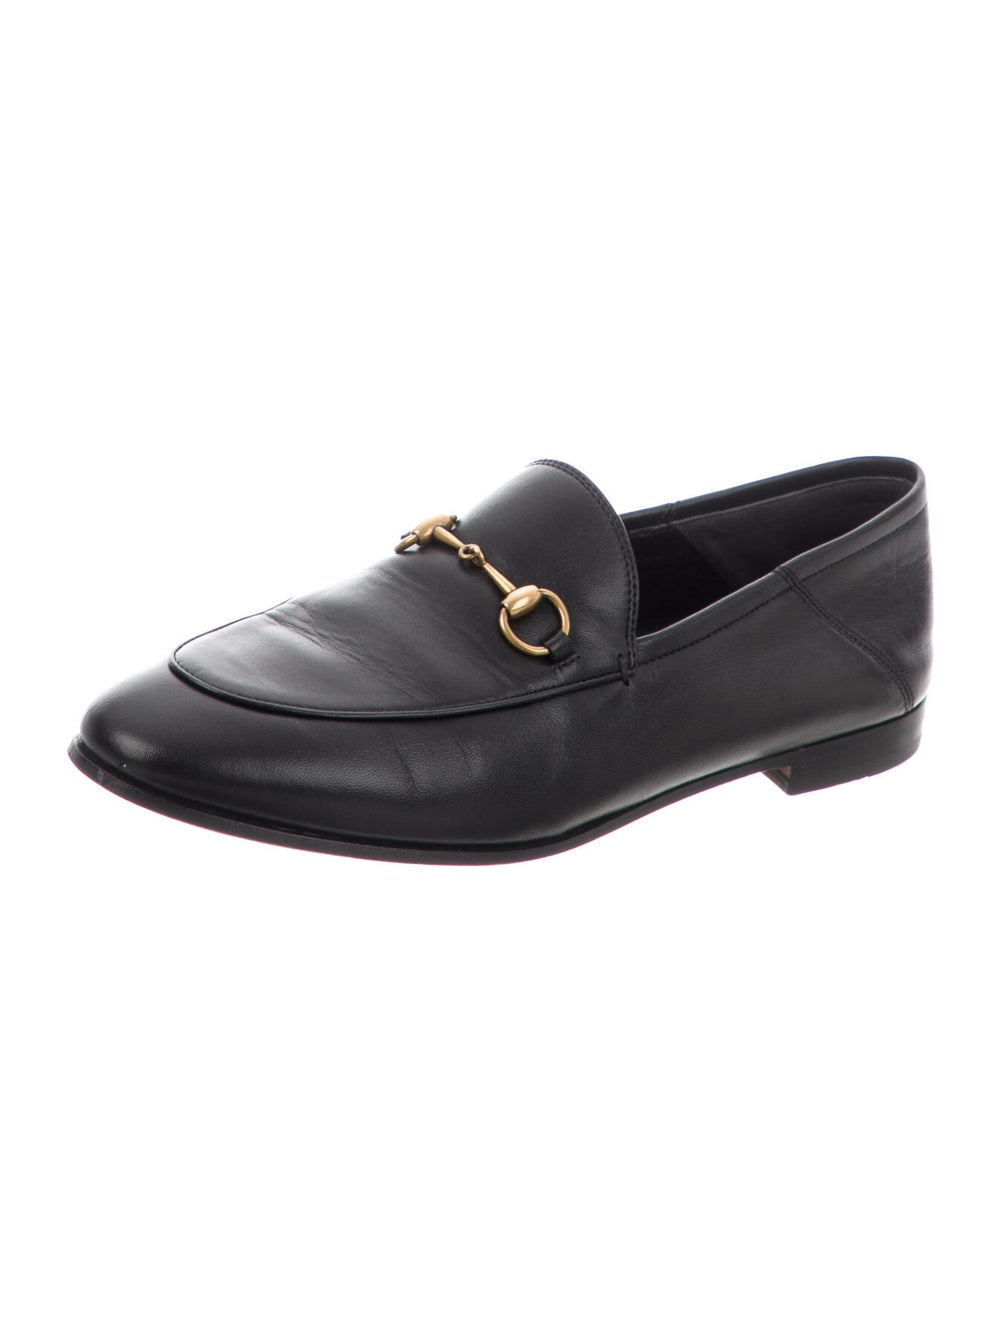 Gucci Horsebit Accent Leather Loafers Black - image 2